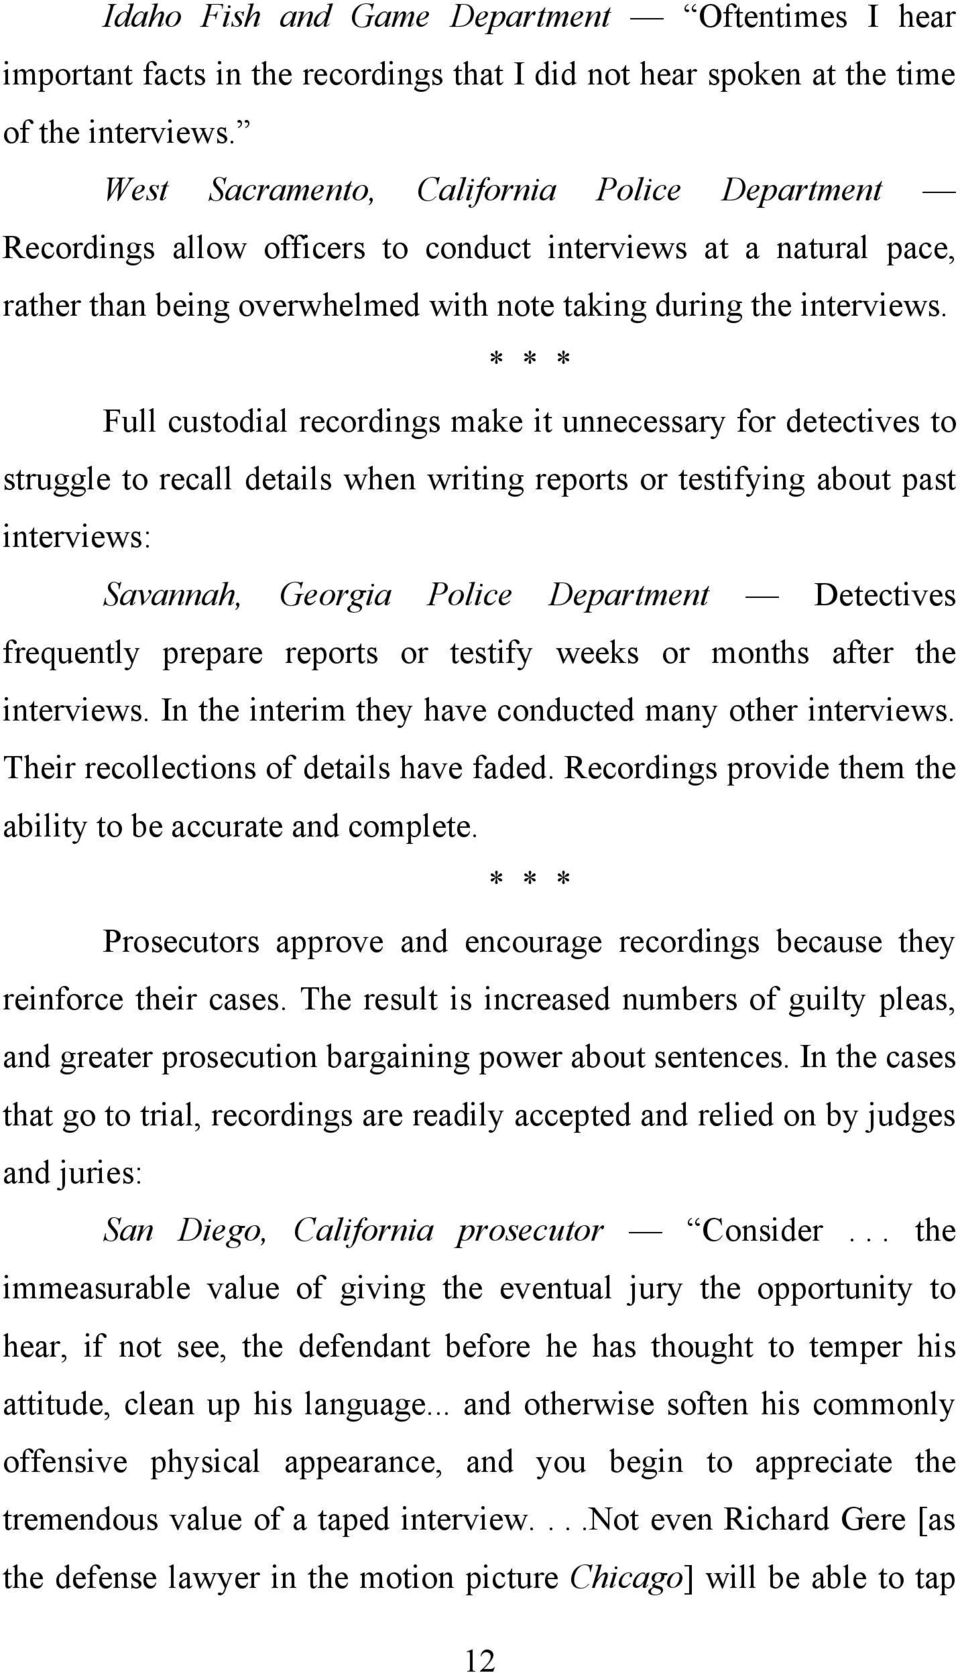 * * * Full custodial recordings make it unnecessary for detectives to struggle to recall details when writing reports or testifying about past interviews: Savannah, Georgia Police Department